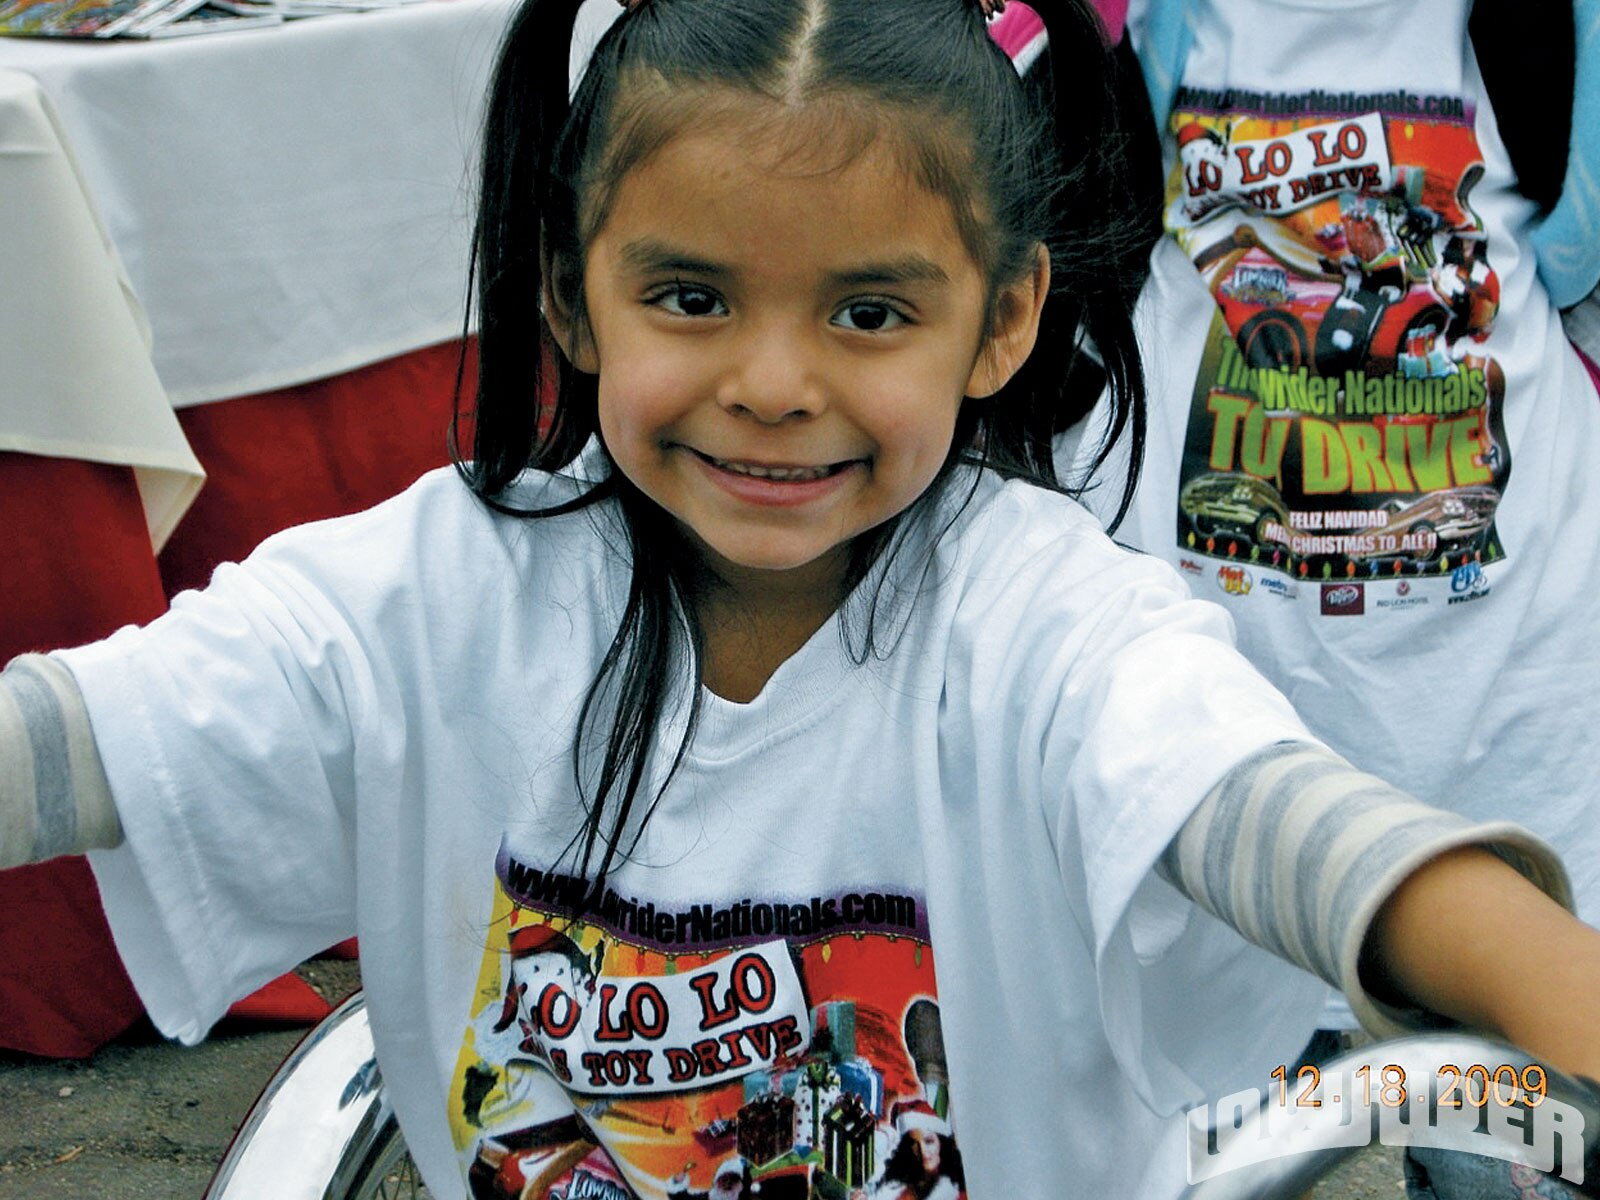 Josie the youngest of the Castro family, proudly rides her bike at the toy drive.